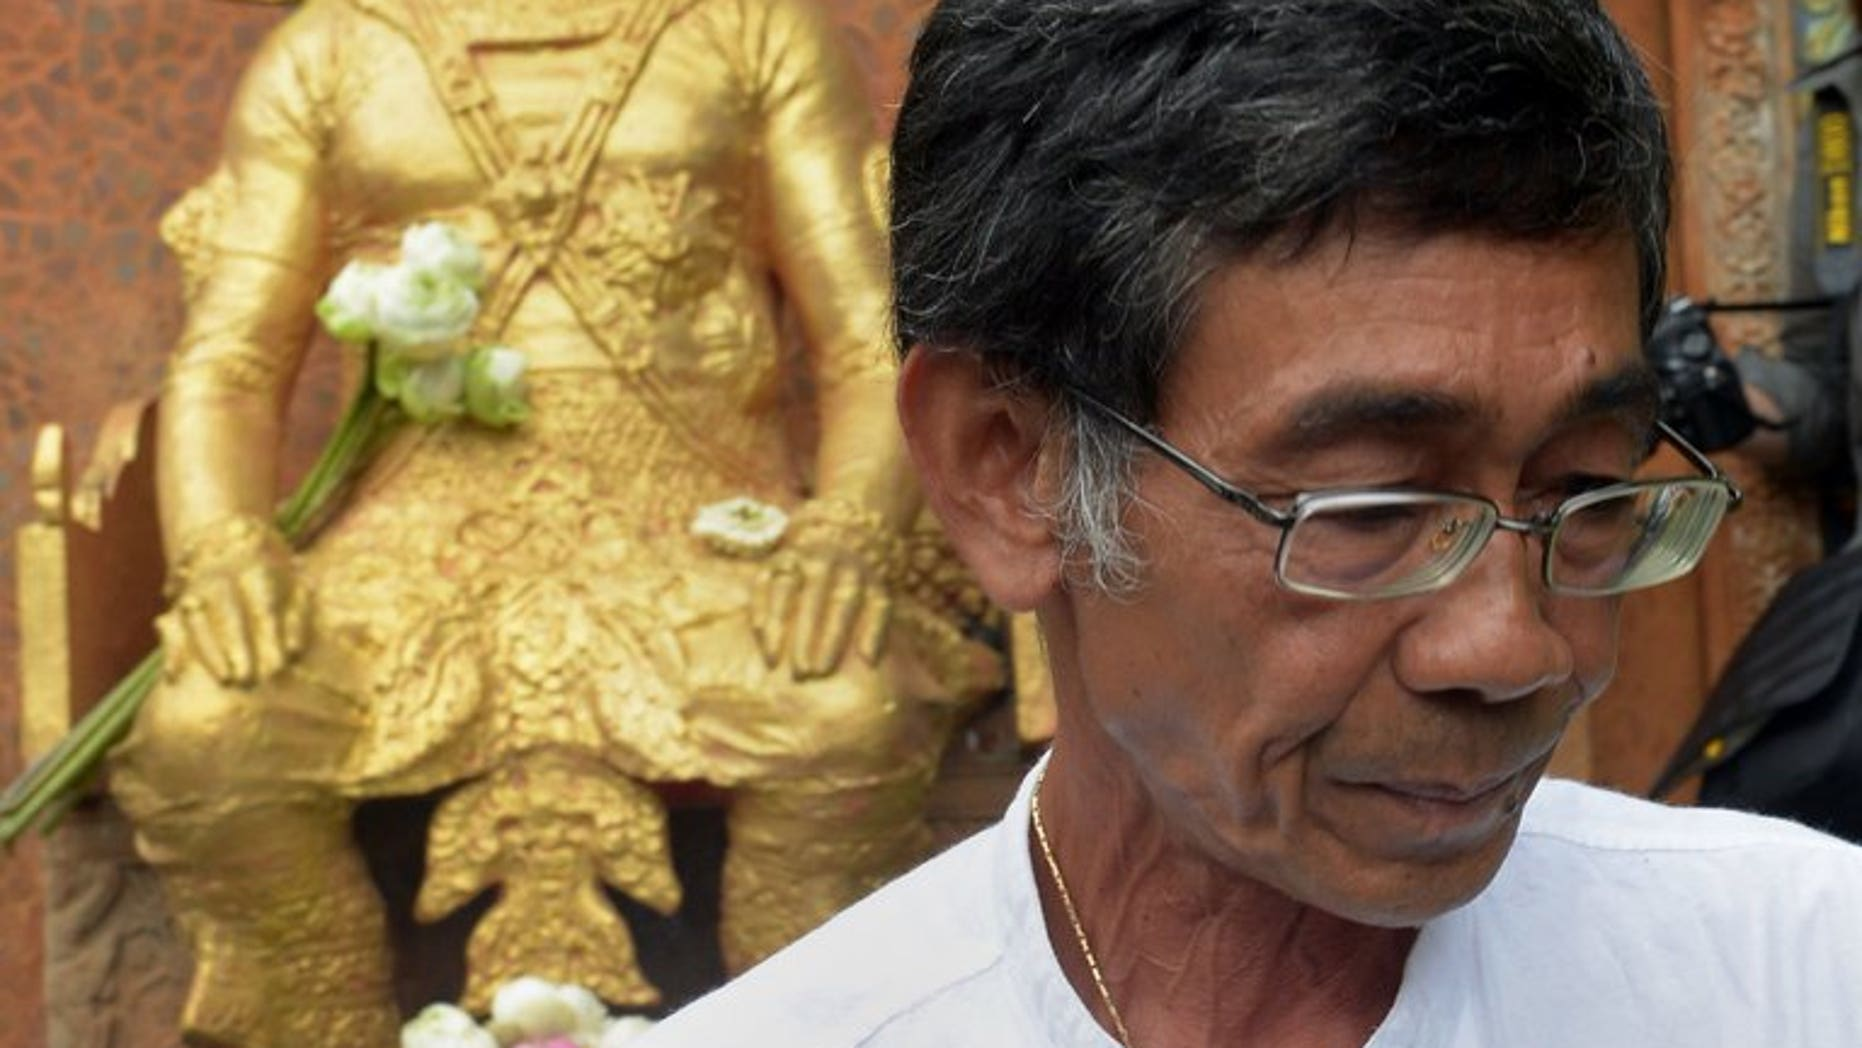 Cambodian Prince Sisowath Thomico walks past a statue of King Sisowath after praying and laying flowers during his hunger strike at Wat Phnom in Phnom Penh, on September 20, 2013. The prince has ended a hunger strike over disputed polls after military police expelled him from a pagoda where he was holding the protest fearing it would snowball.